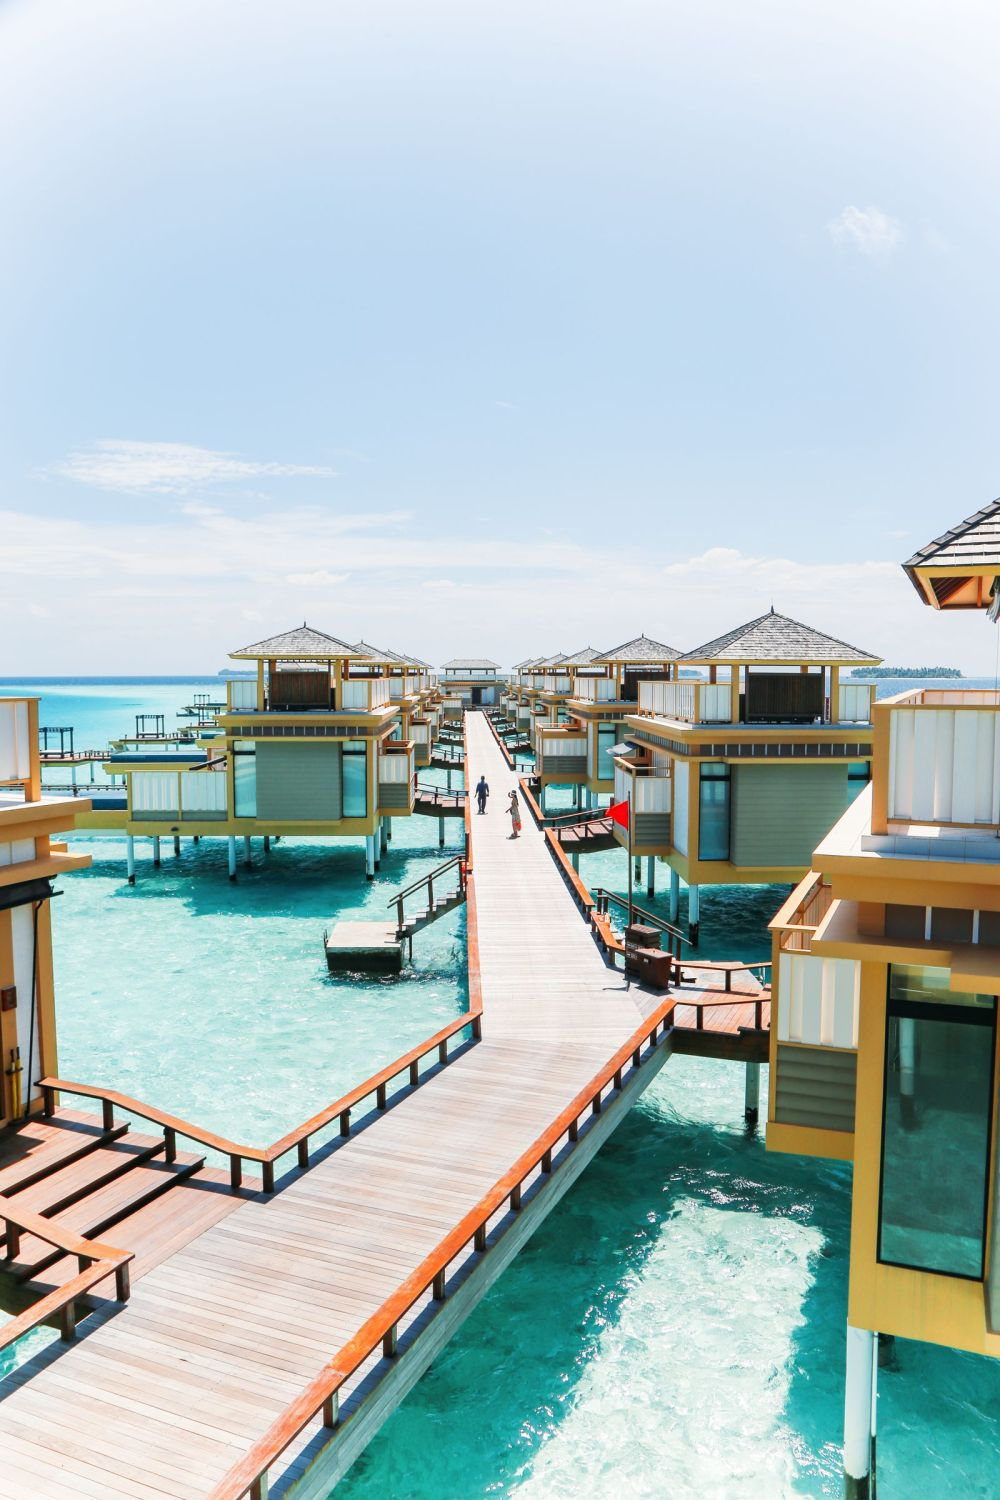 Angsana Velavaru - The Most Amazing In-Ocean Villa In The Maldives (10)